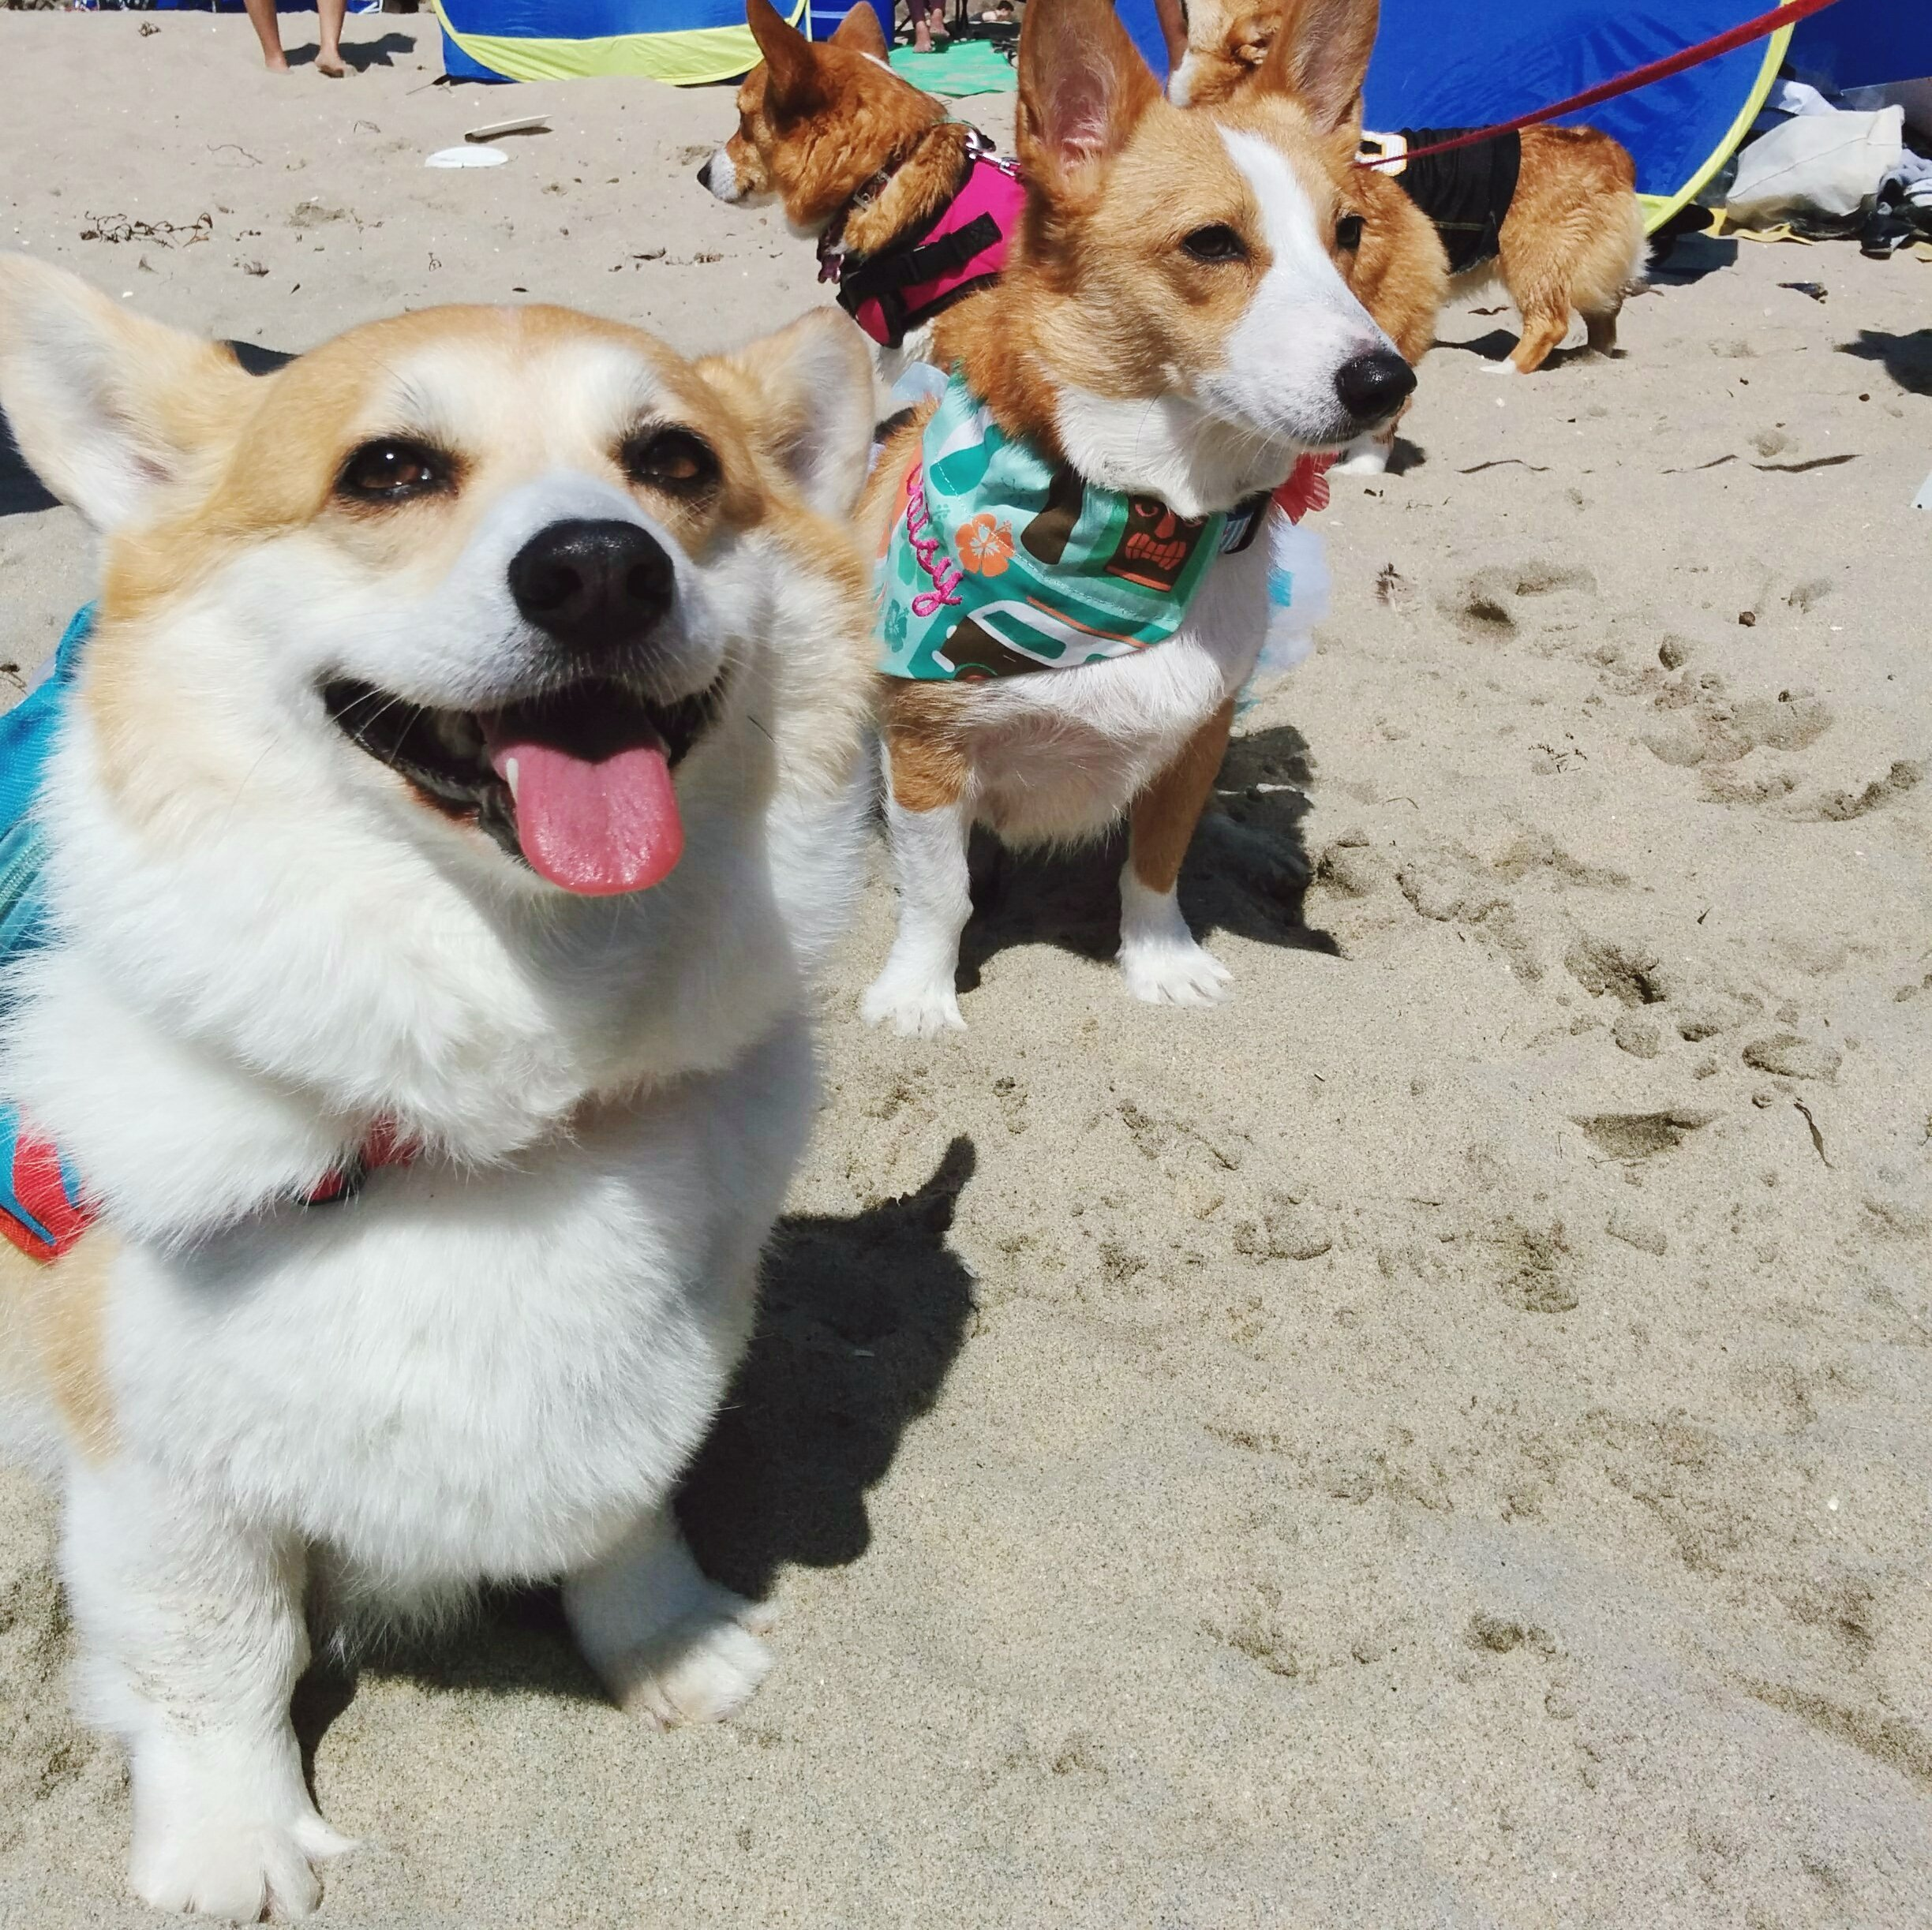 500 corgis invade California beach